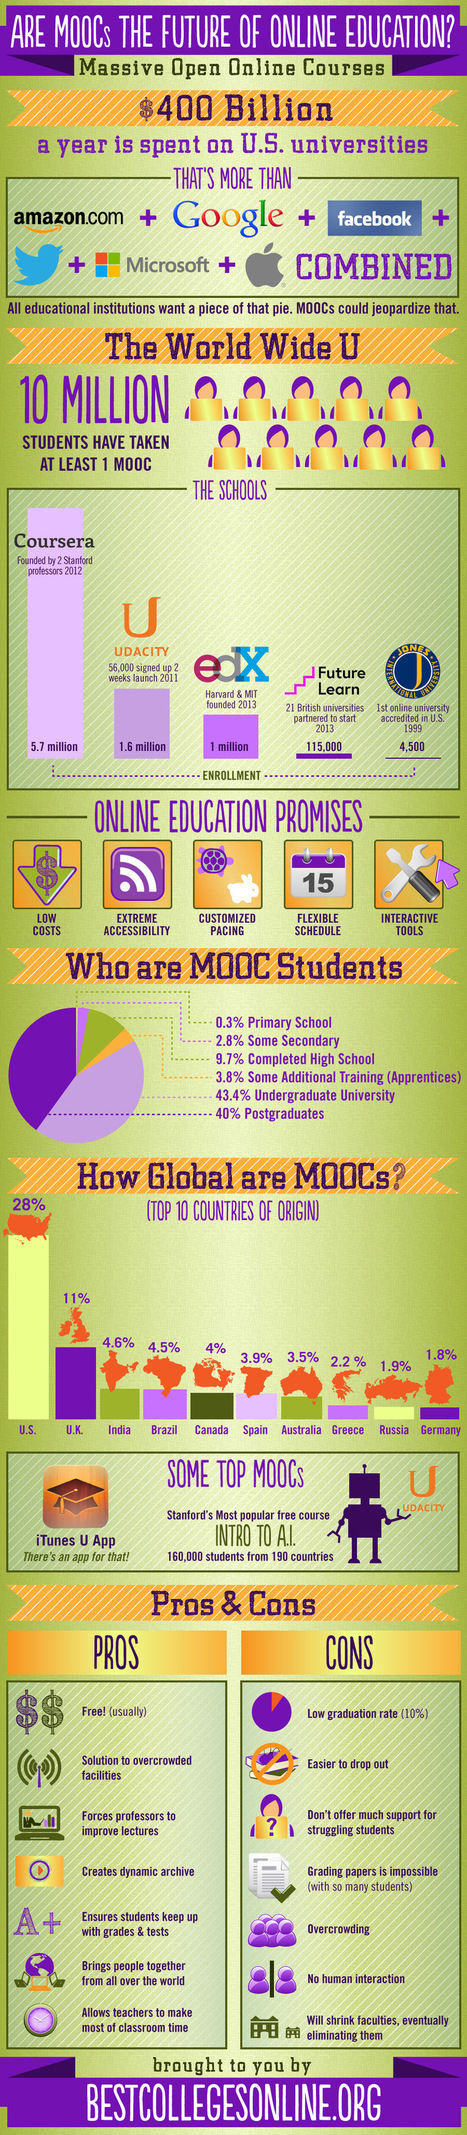 Are MOOCs the Future of Online Education? | Neli Maria Mengalli's Scoop.it! Space | Scoop.it